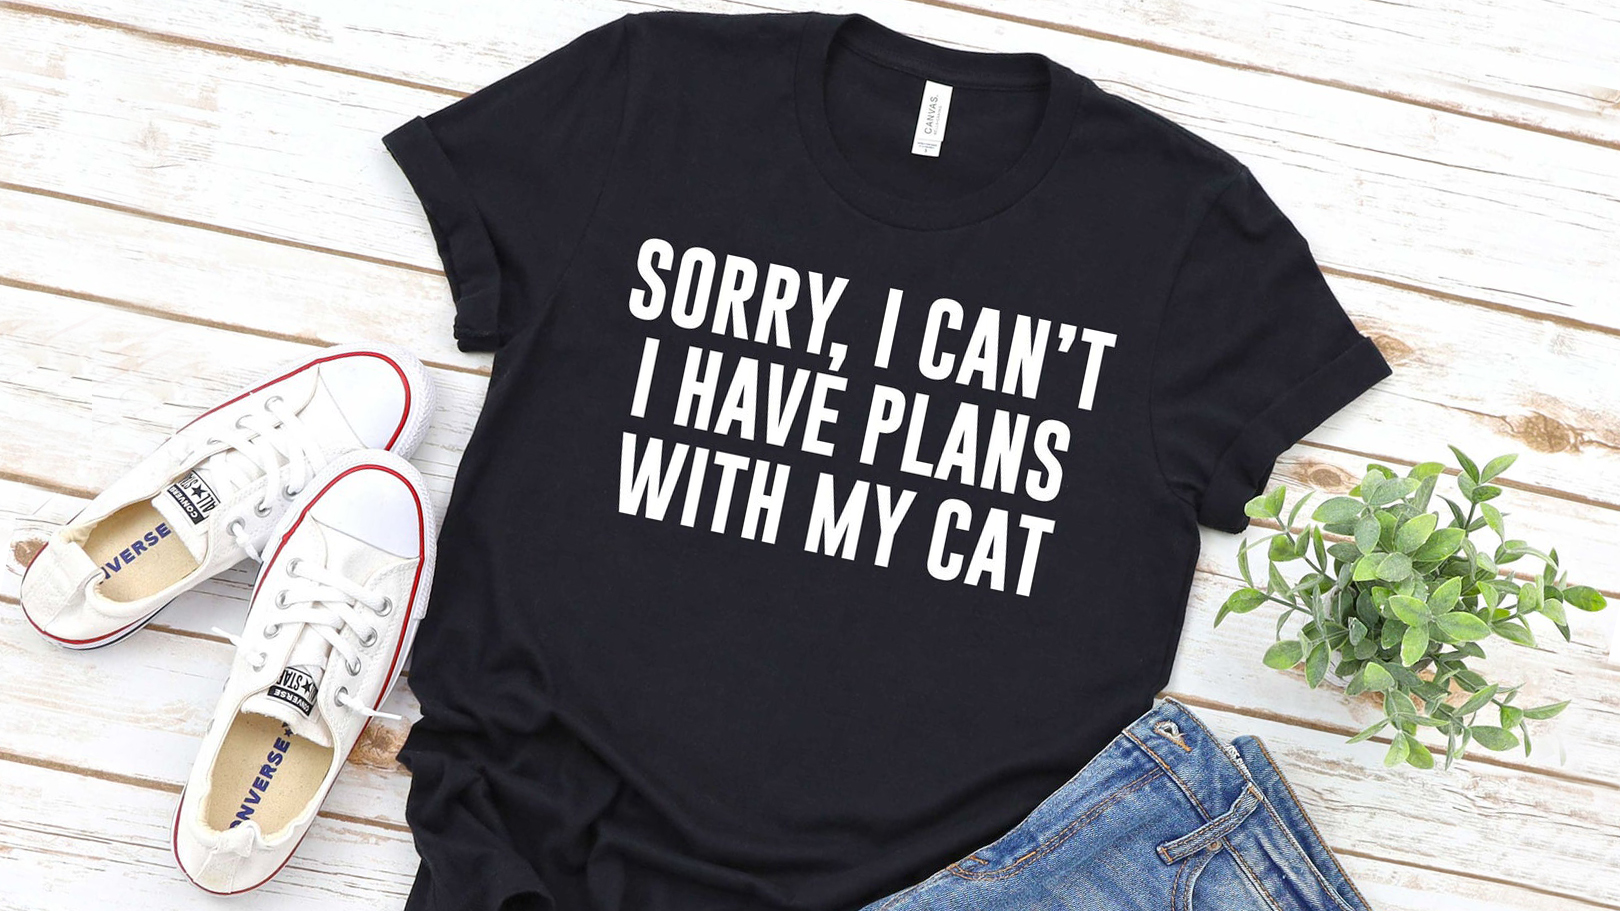 Funny Valentine's Day Gifts lead image: Sorry, I can't I have plans with my cat T-shirt from etsy